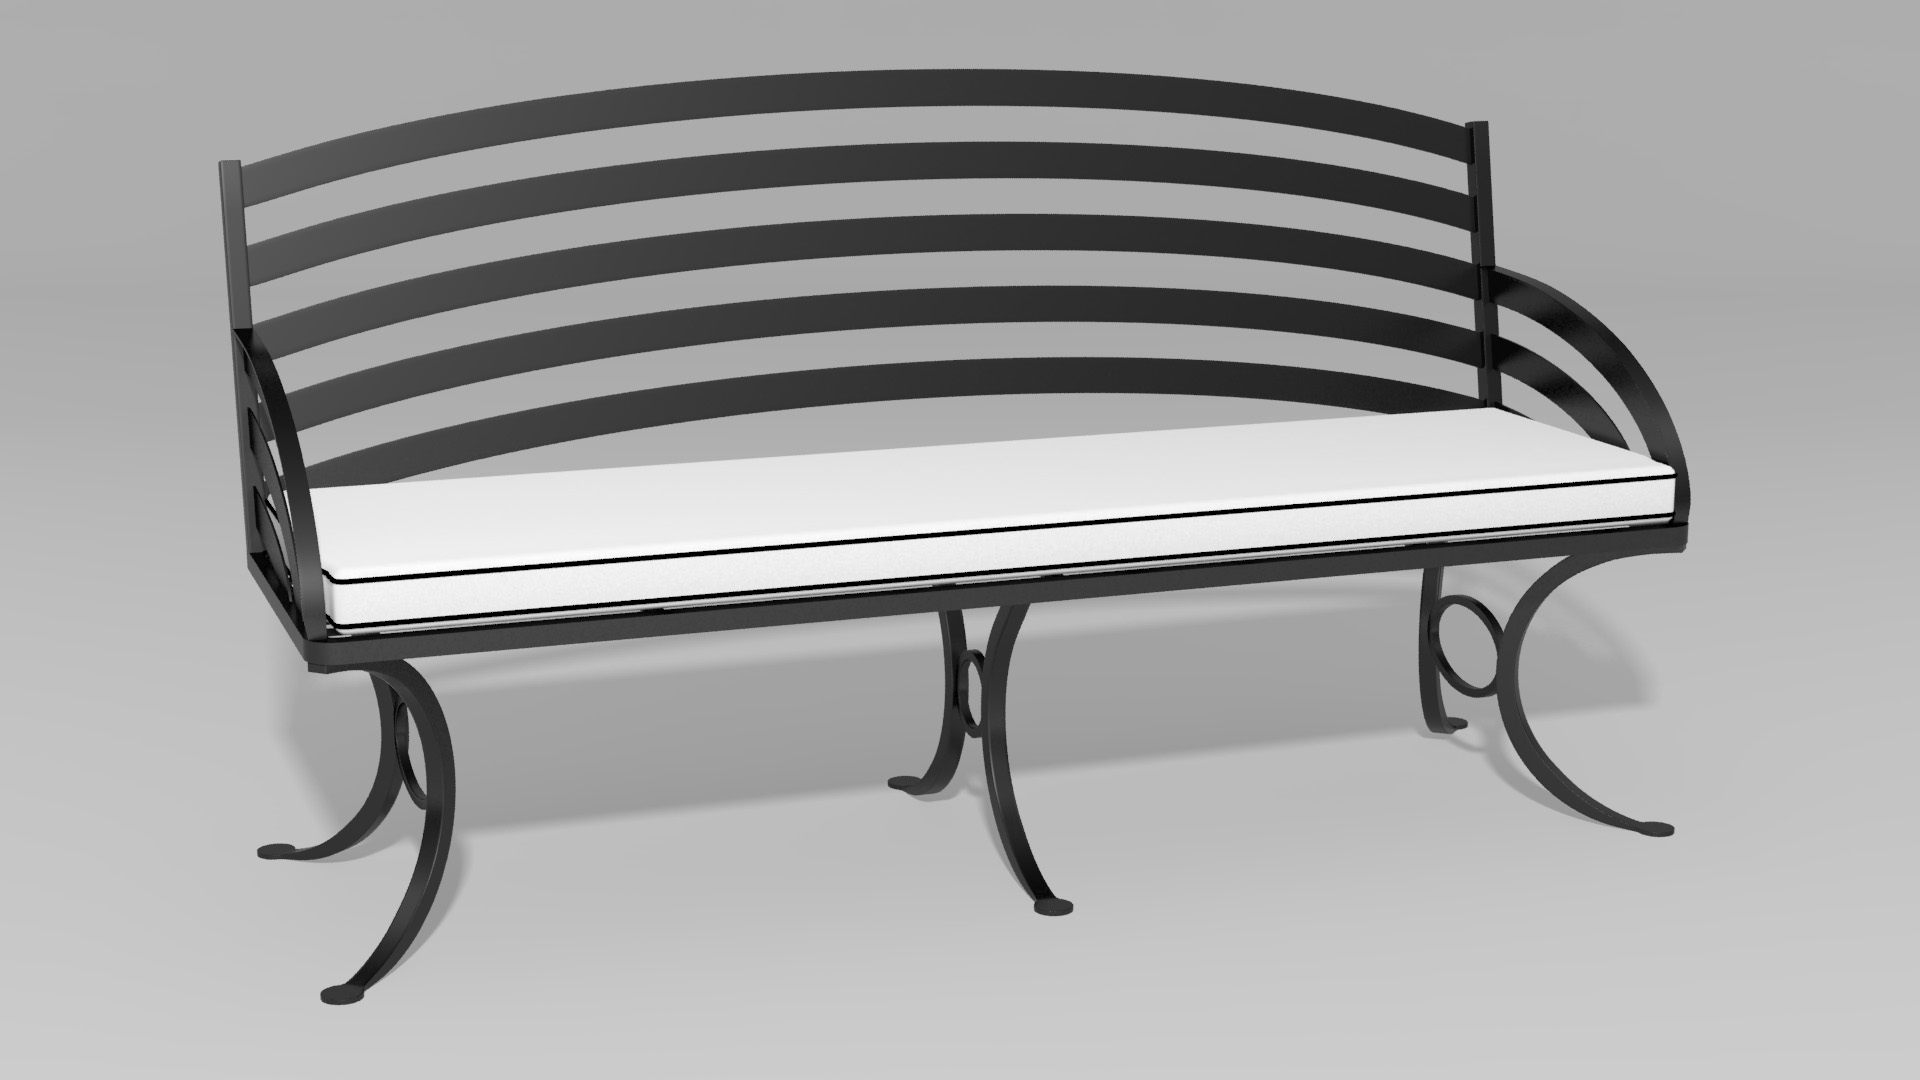 Terrific Chinese Chippendale Backless Bench Obrien Ironworks Pabps2019 Chair Design Images Pabps2019Com